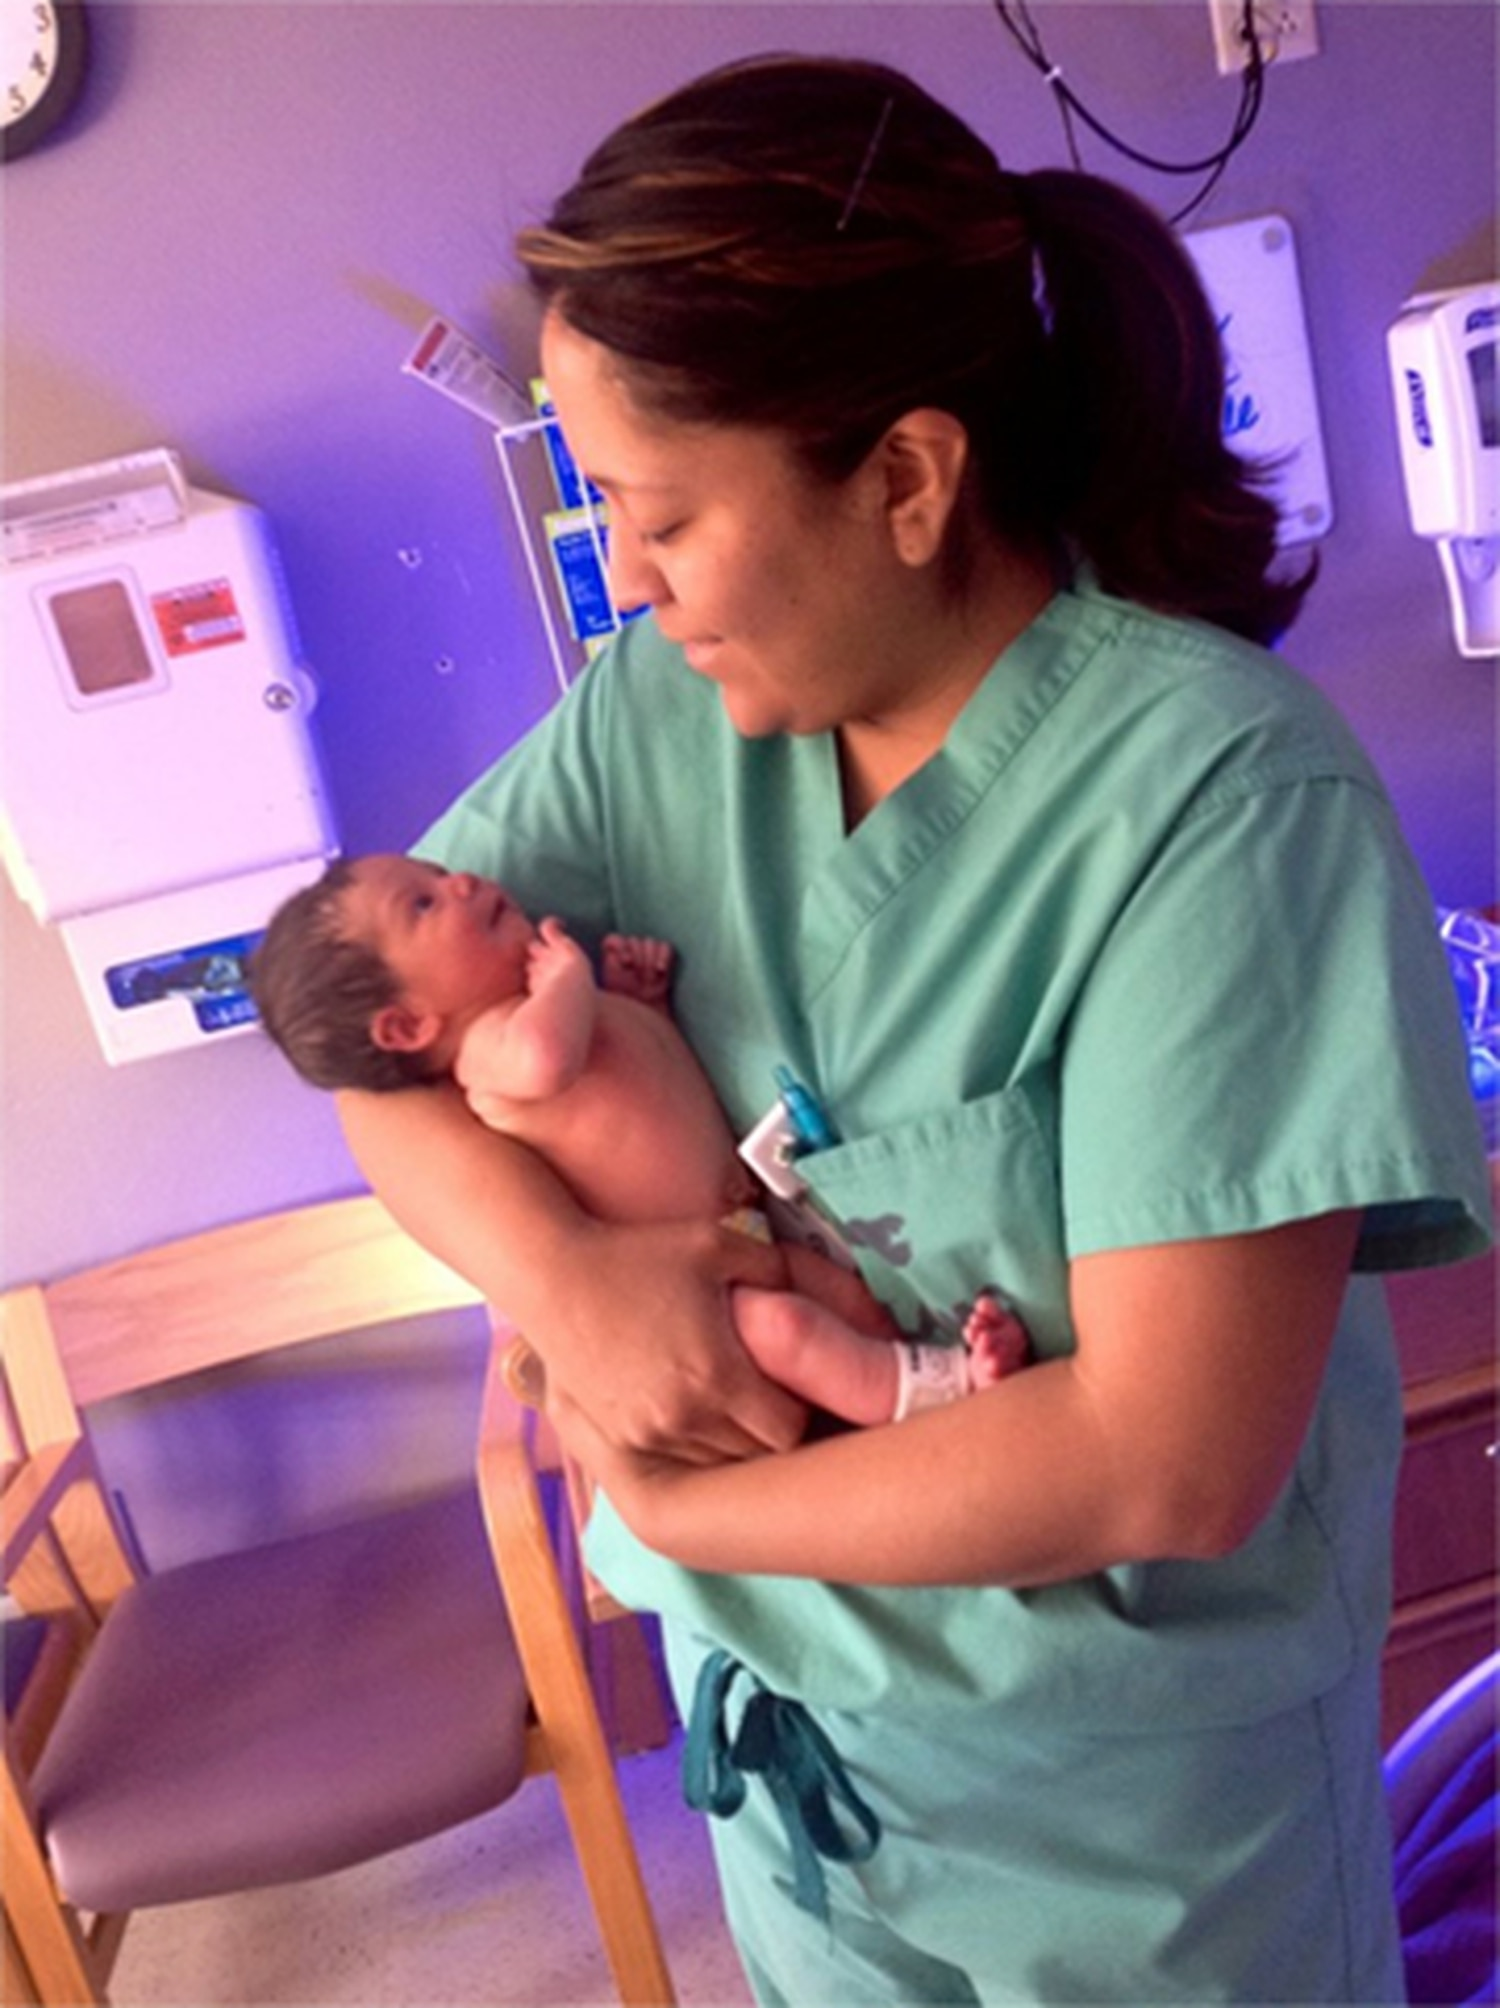 Nicolle Gonzales almost died during childbirth, and now the San Ildefonso Pueblo and Diné woman is a midwife with plans to open a Native birthing center.